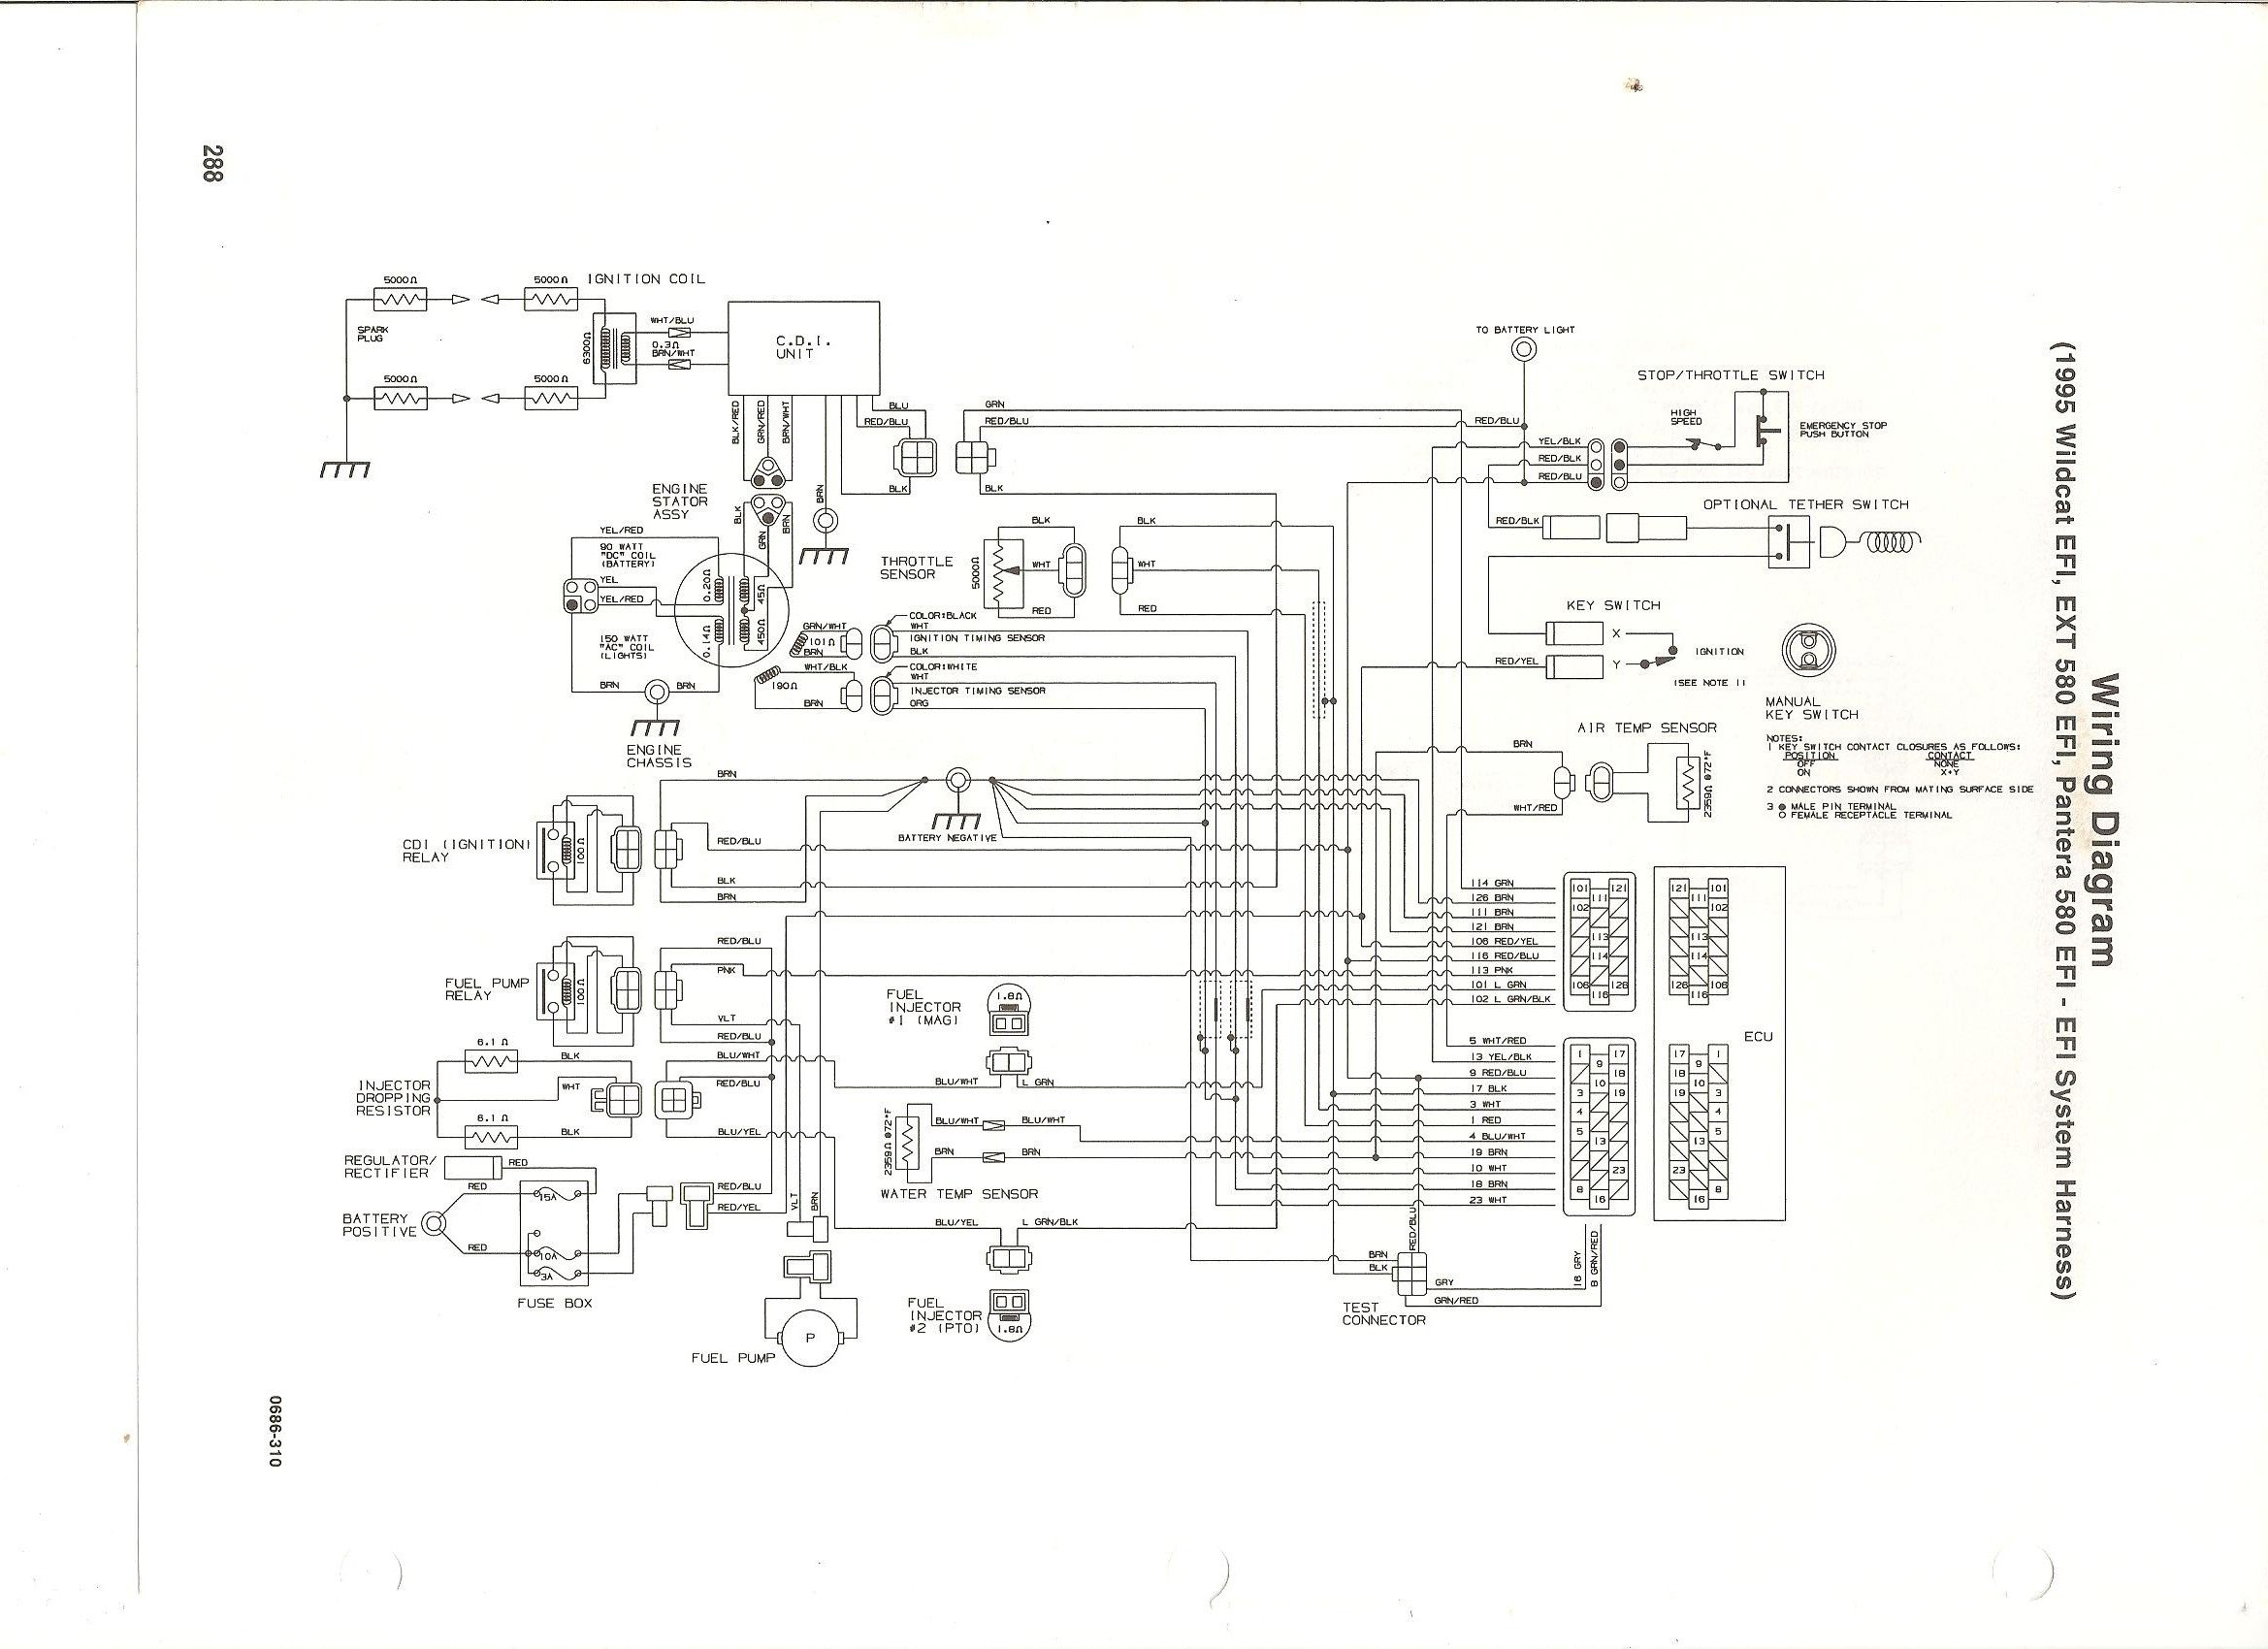 '94 EXT 580 electrical schematic-efi-wiring-diagram.jpg